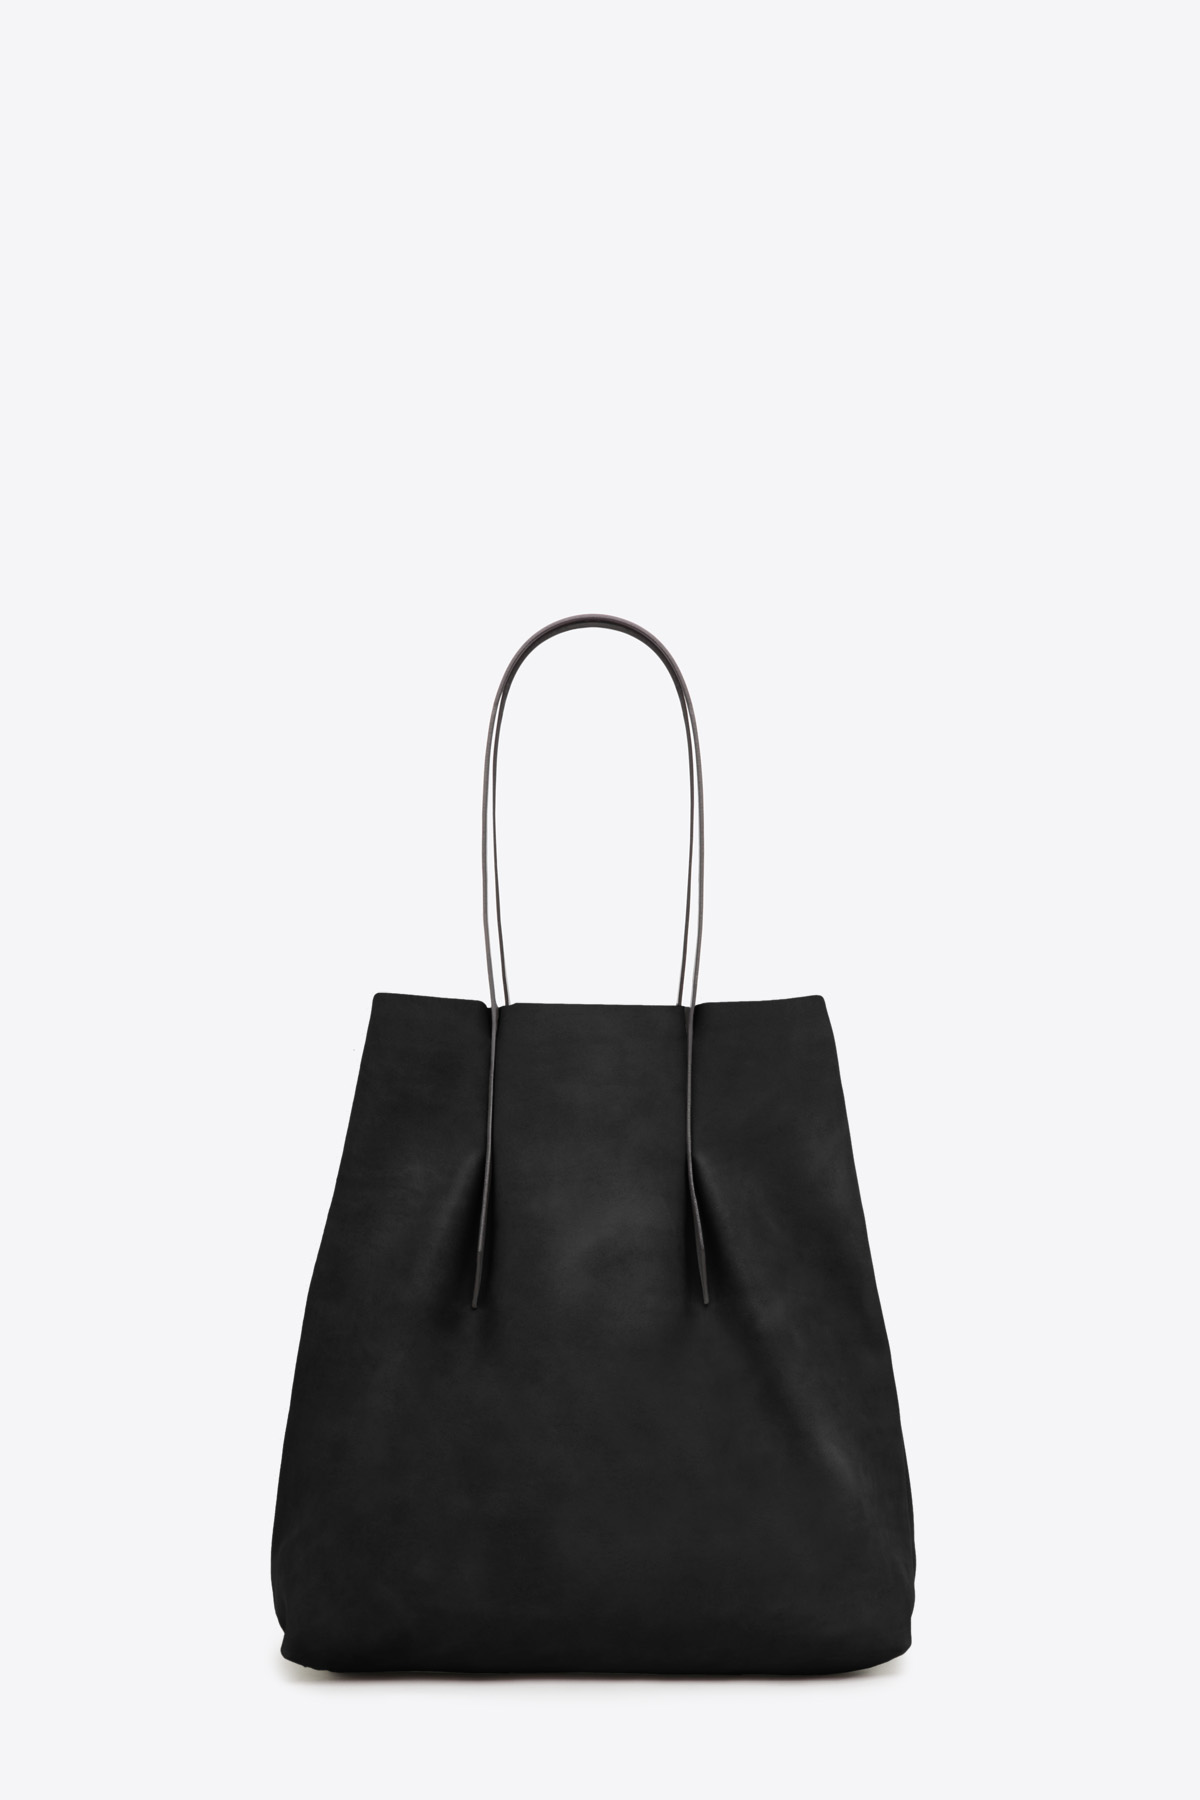 dclr006-shoppingbag-a1-black-back